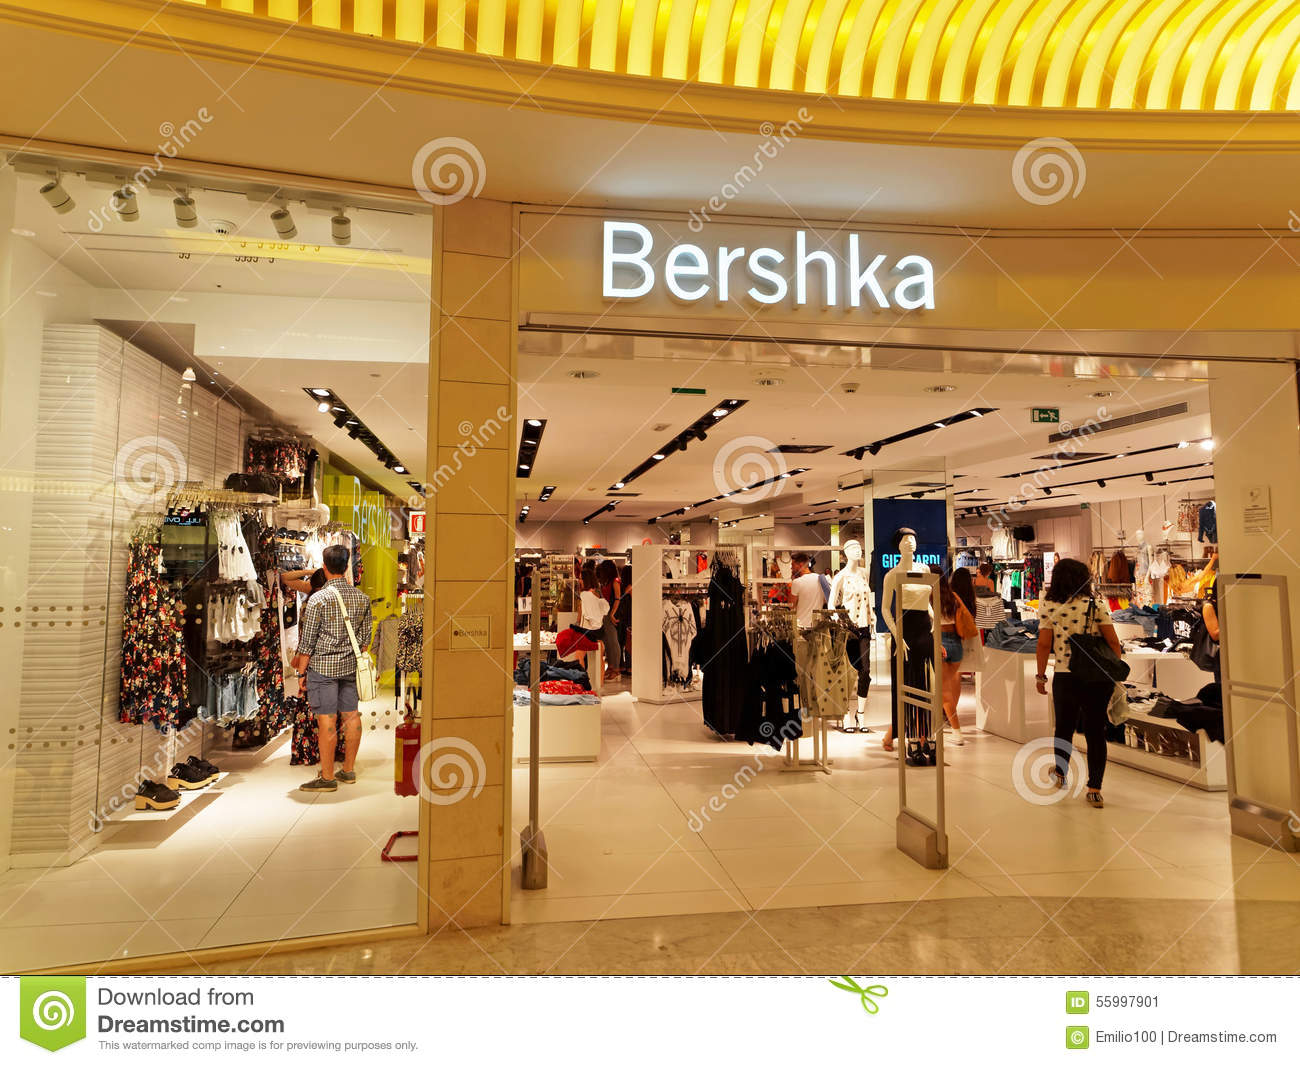 bershka store in rome italy with people shopping editorial photo image 55997901. Black Bedroom Furniture Sets. Home Design Ideas